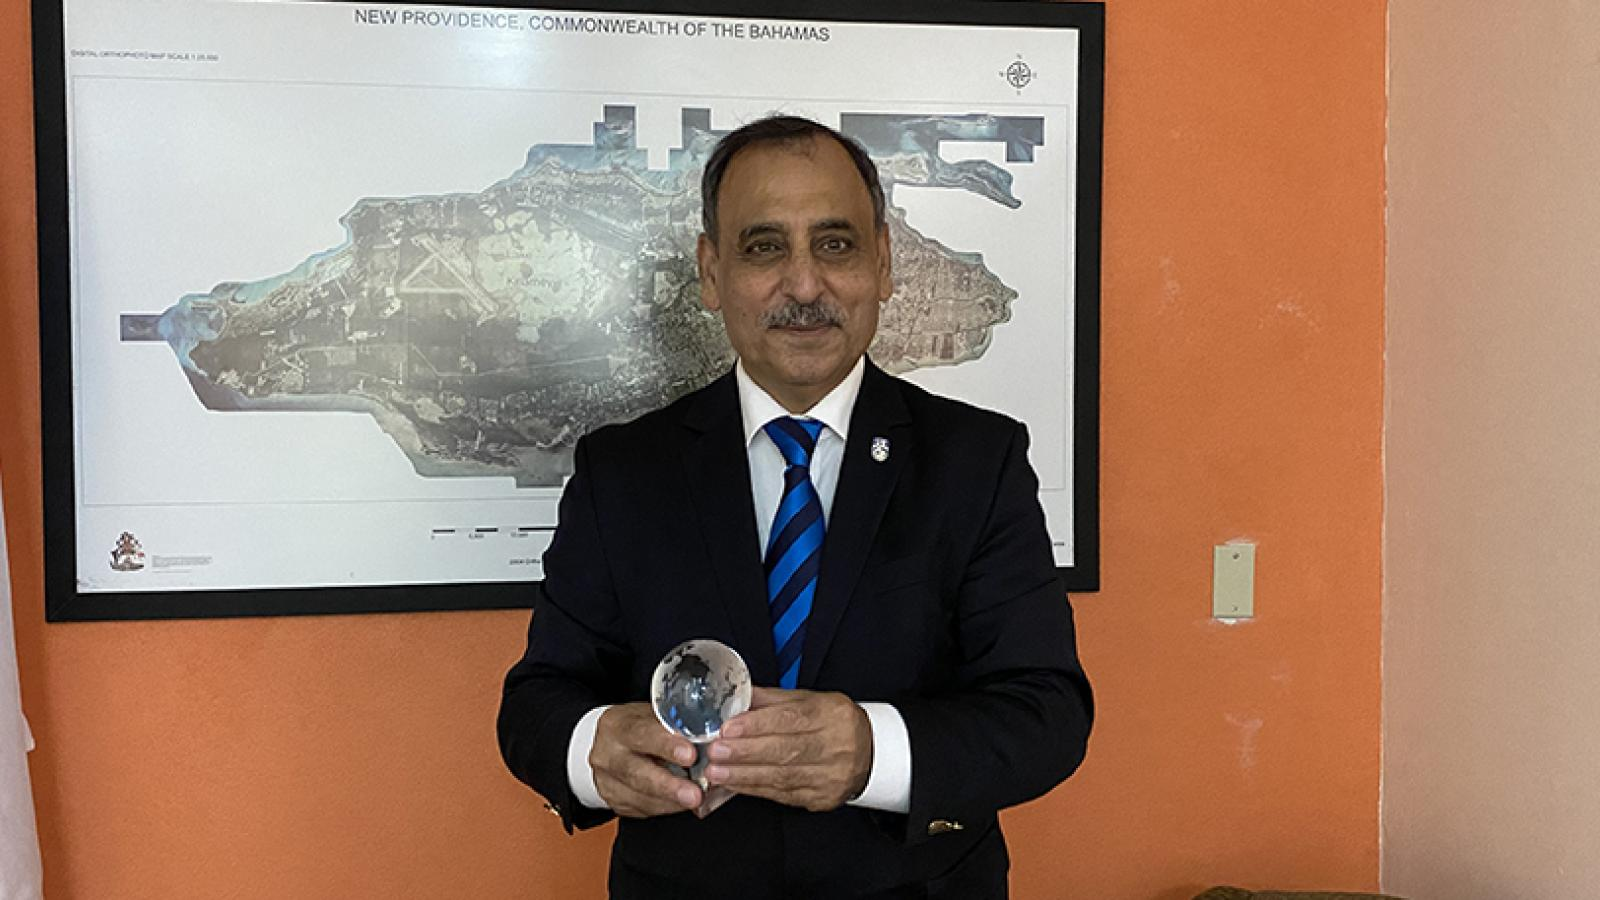 Dr. Sarim Al-Zubaidy holding his award in front of a map of the Bahamas